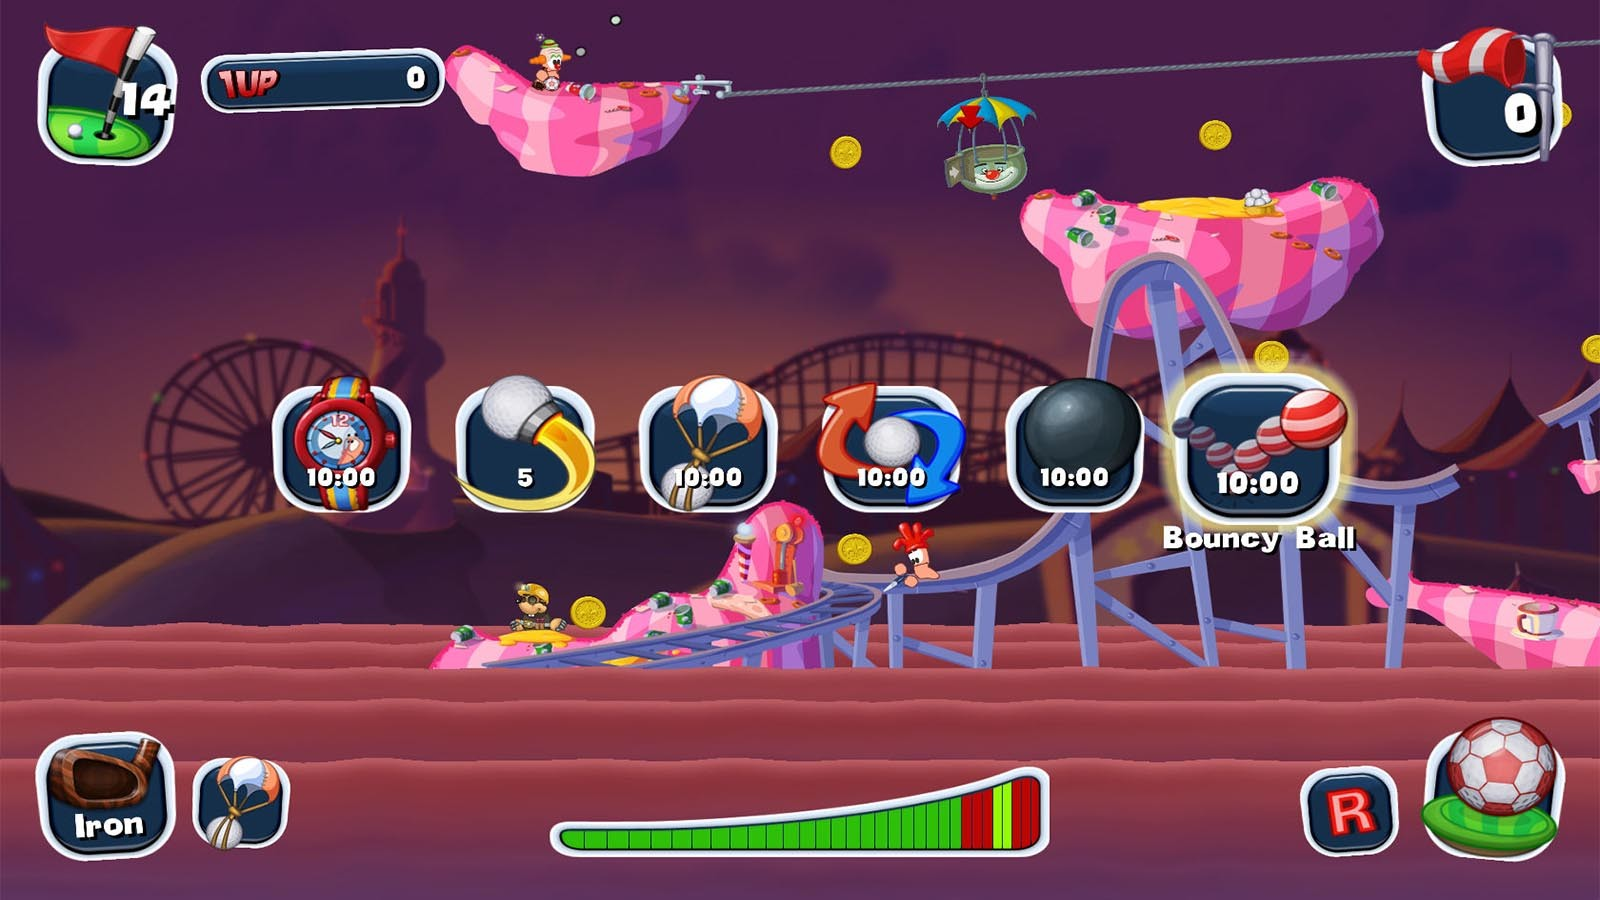 Worms Crazy Golf [Steam CD Key] for PC and Mac - Buy now